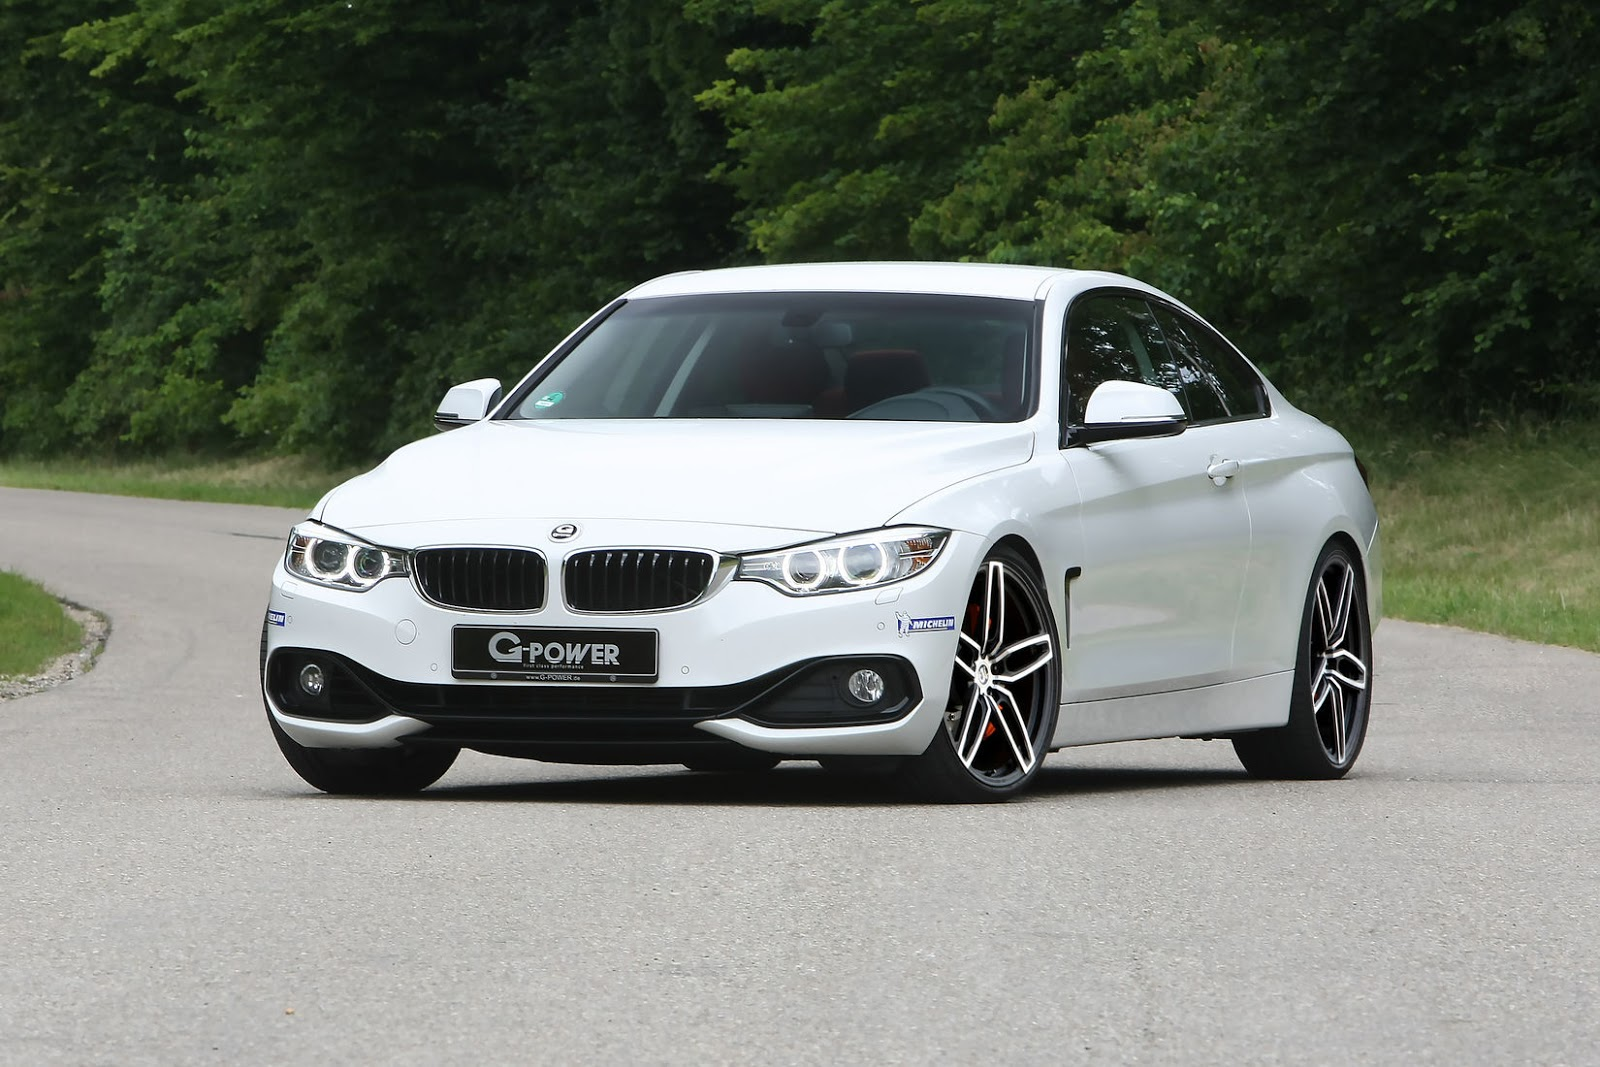 BMW 435d from G-Power Has 375 HP and More Torque than an X5 M